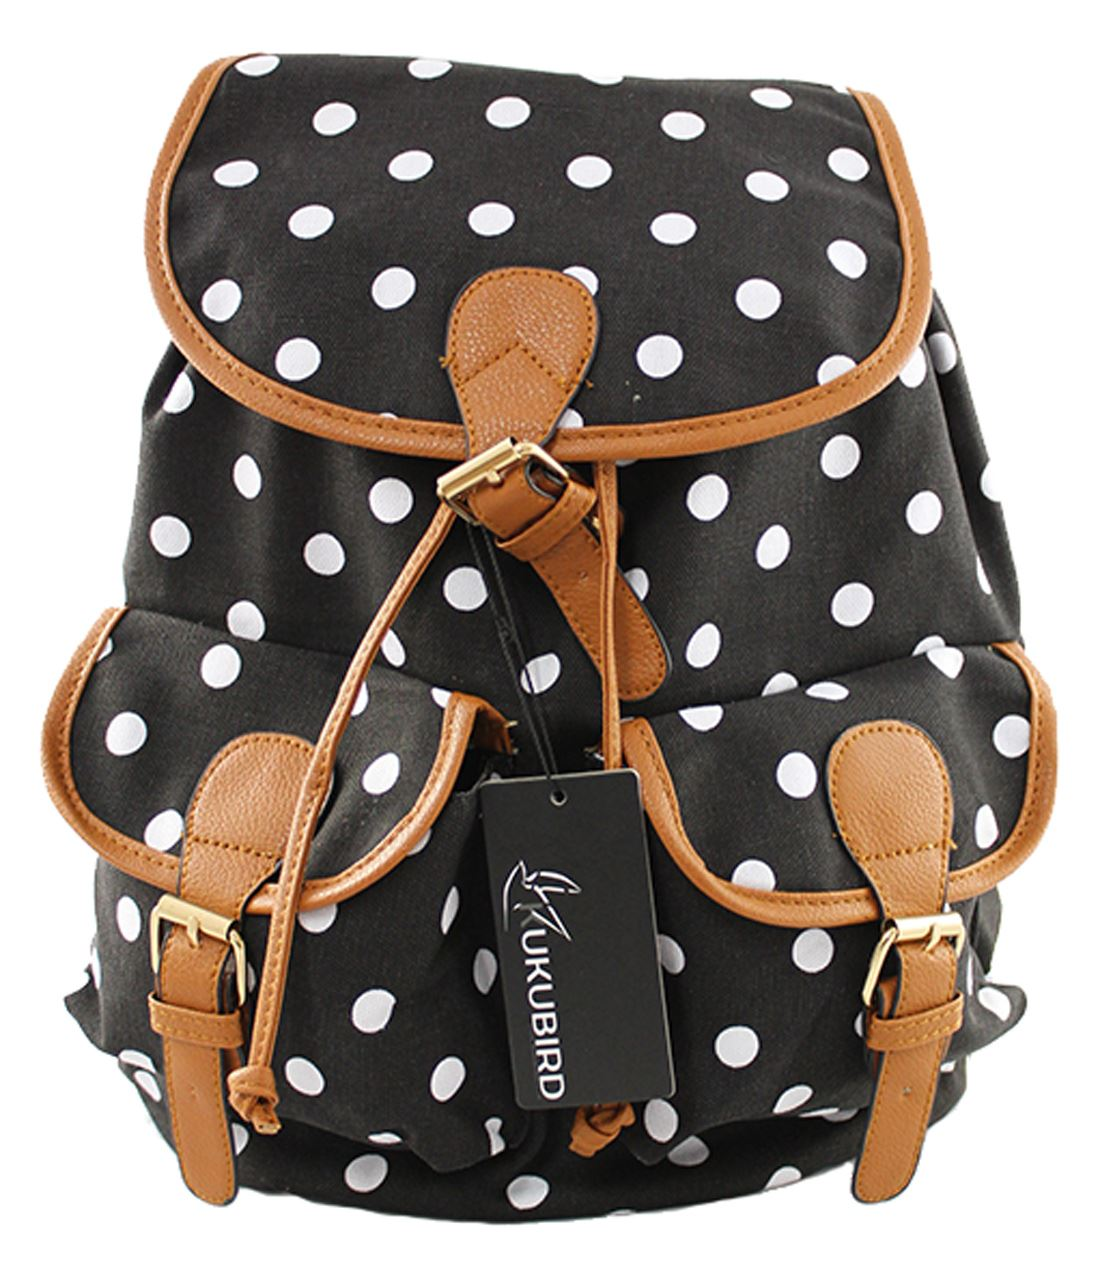 Shop for girls' backpacks, rolling backpacks, backpacks with lunch boxes, skater backpacks, polka-dots backpacks and backpacks with pencil cases for less at dnxvvyut.ml Save money. Live better.